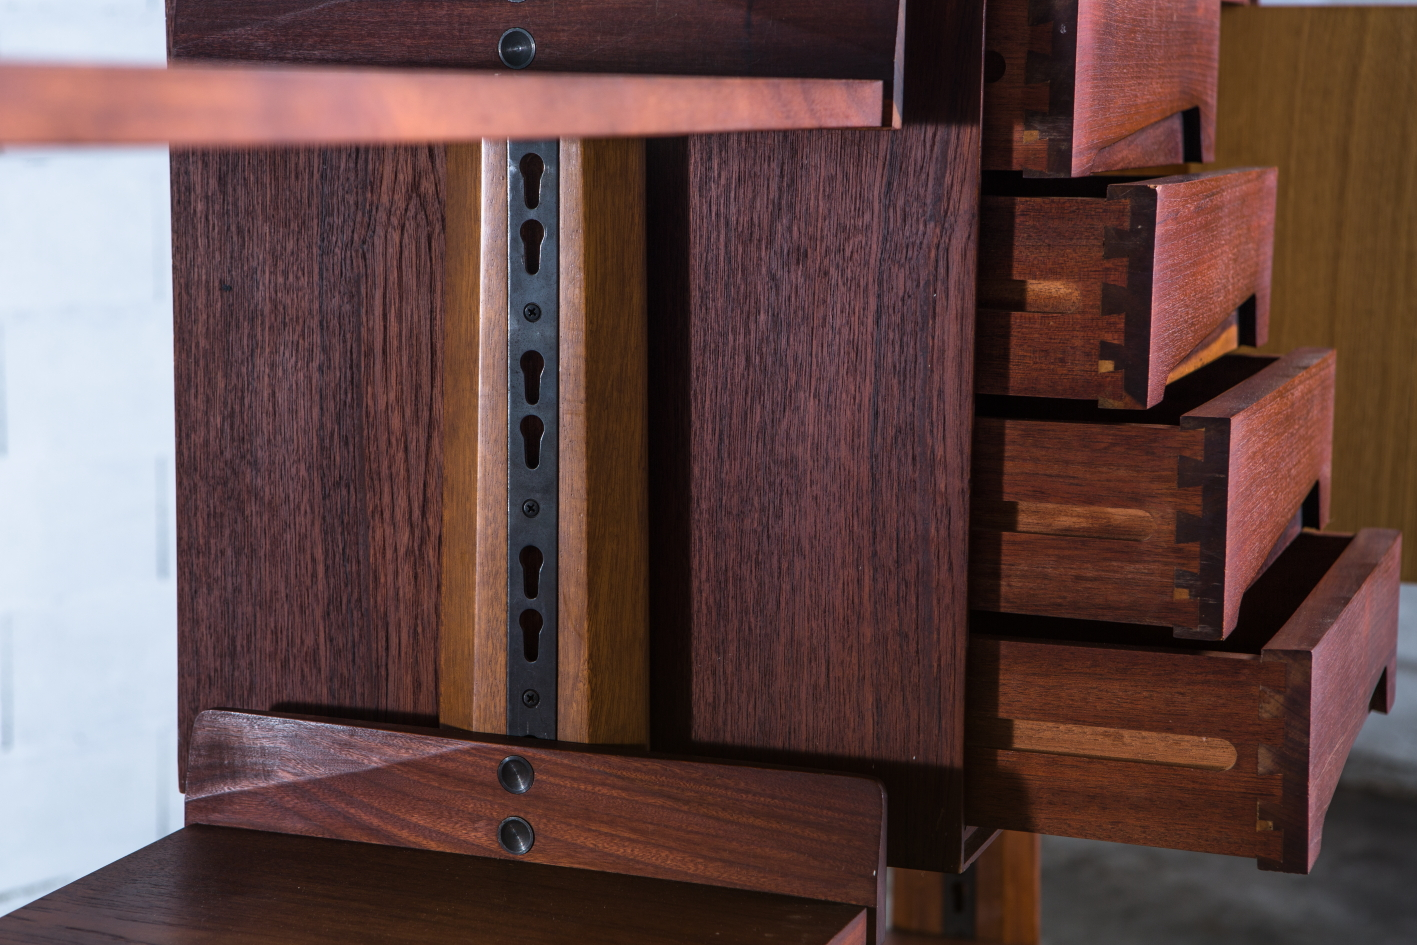 Free standing wall unit, Palutari for Dassi - Drawers and joints